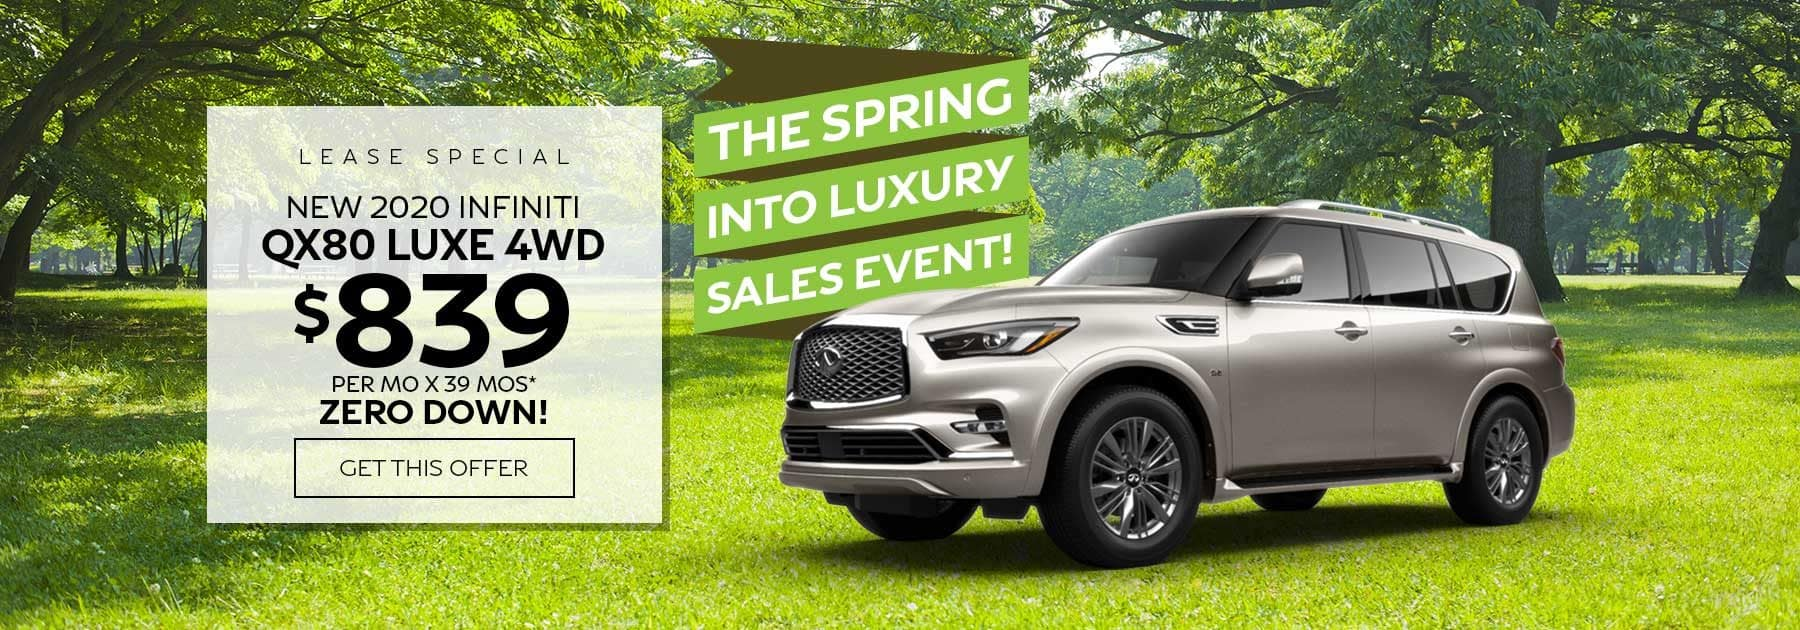 Ramsey INFINITI QX80 lease special